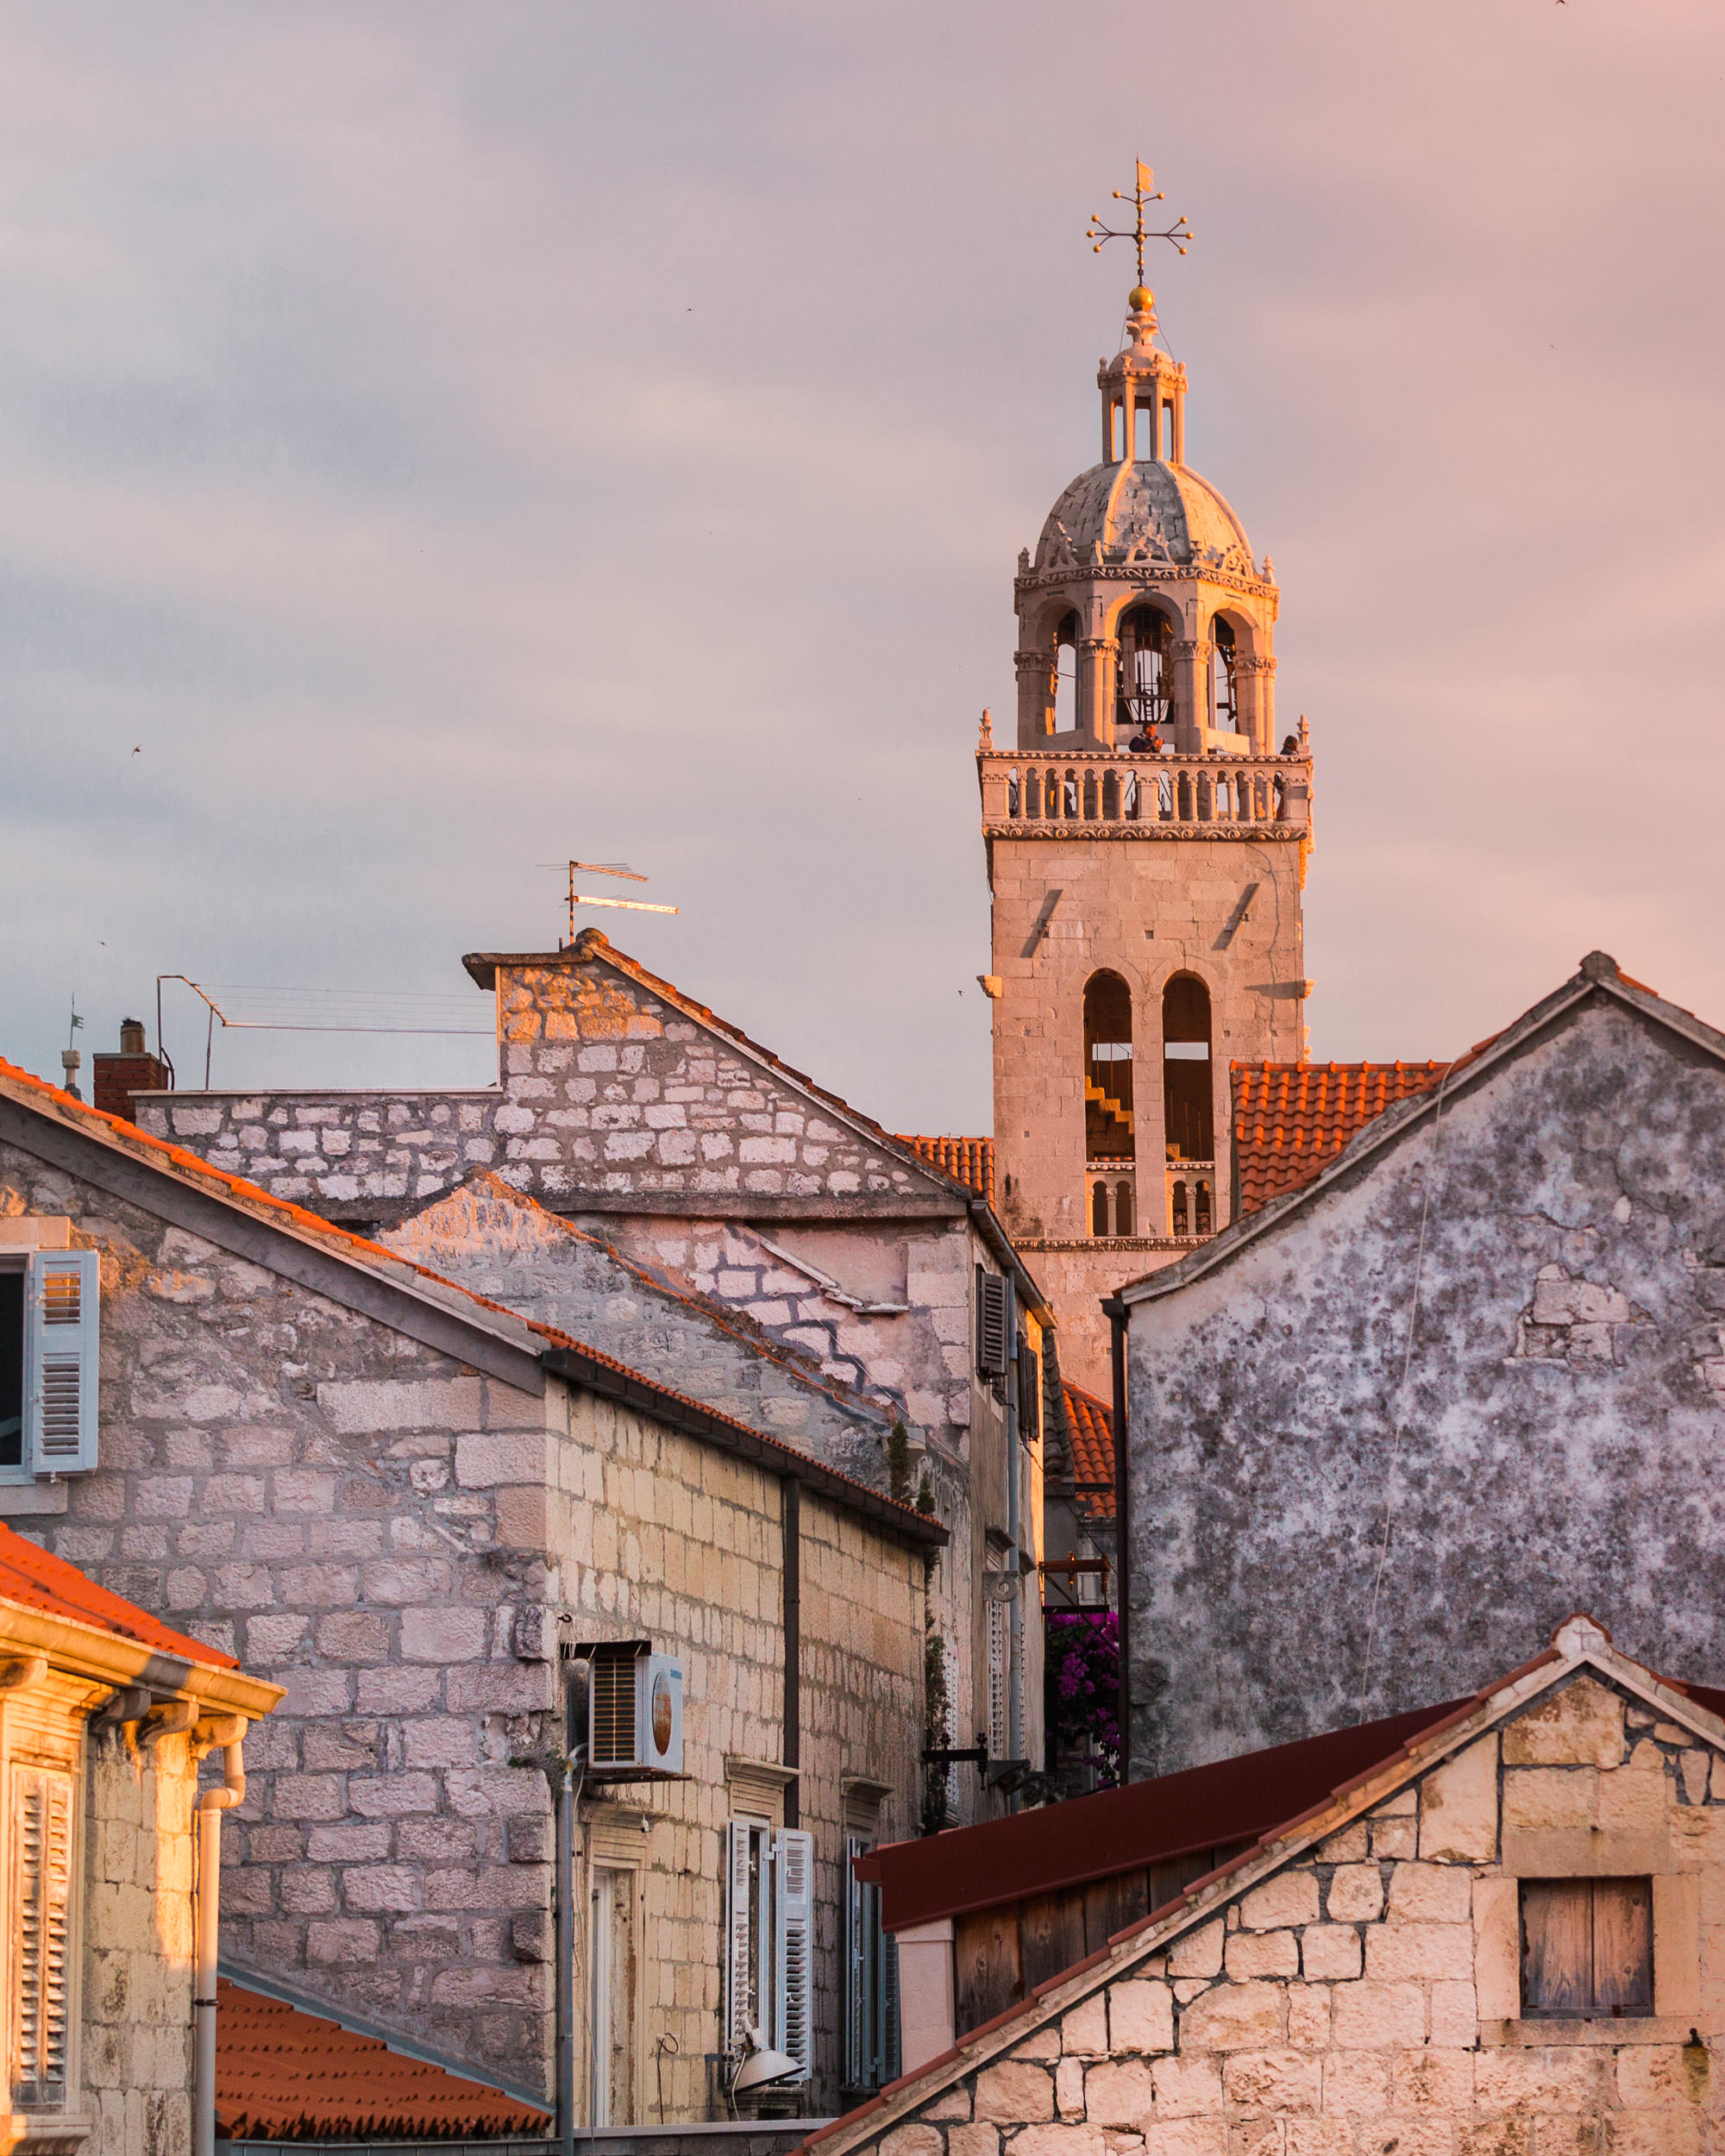 While Sailing in the Mediterranean, we stopped for rooftop drinks in the Croatian town of Korcula